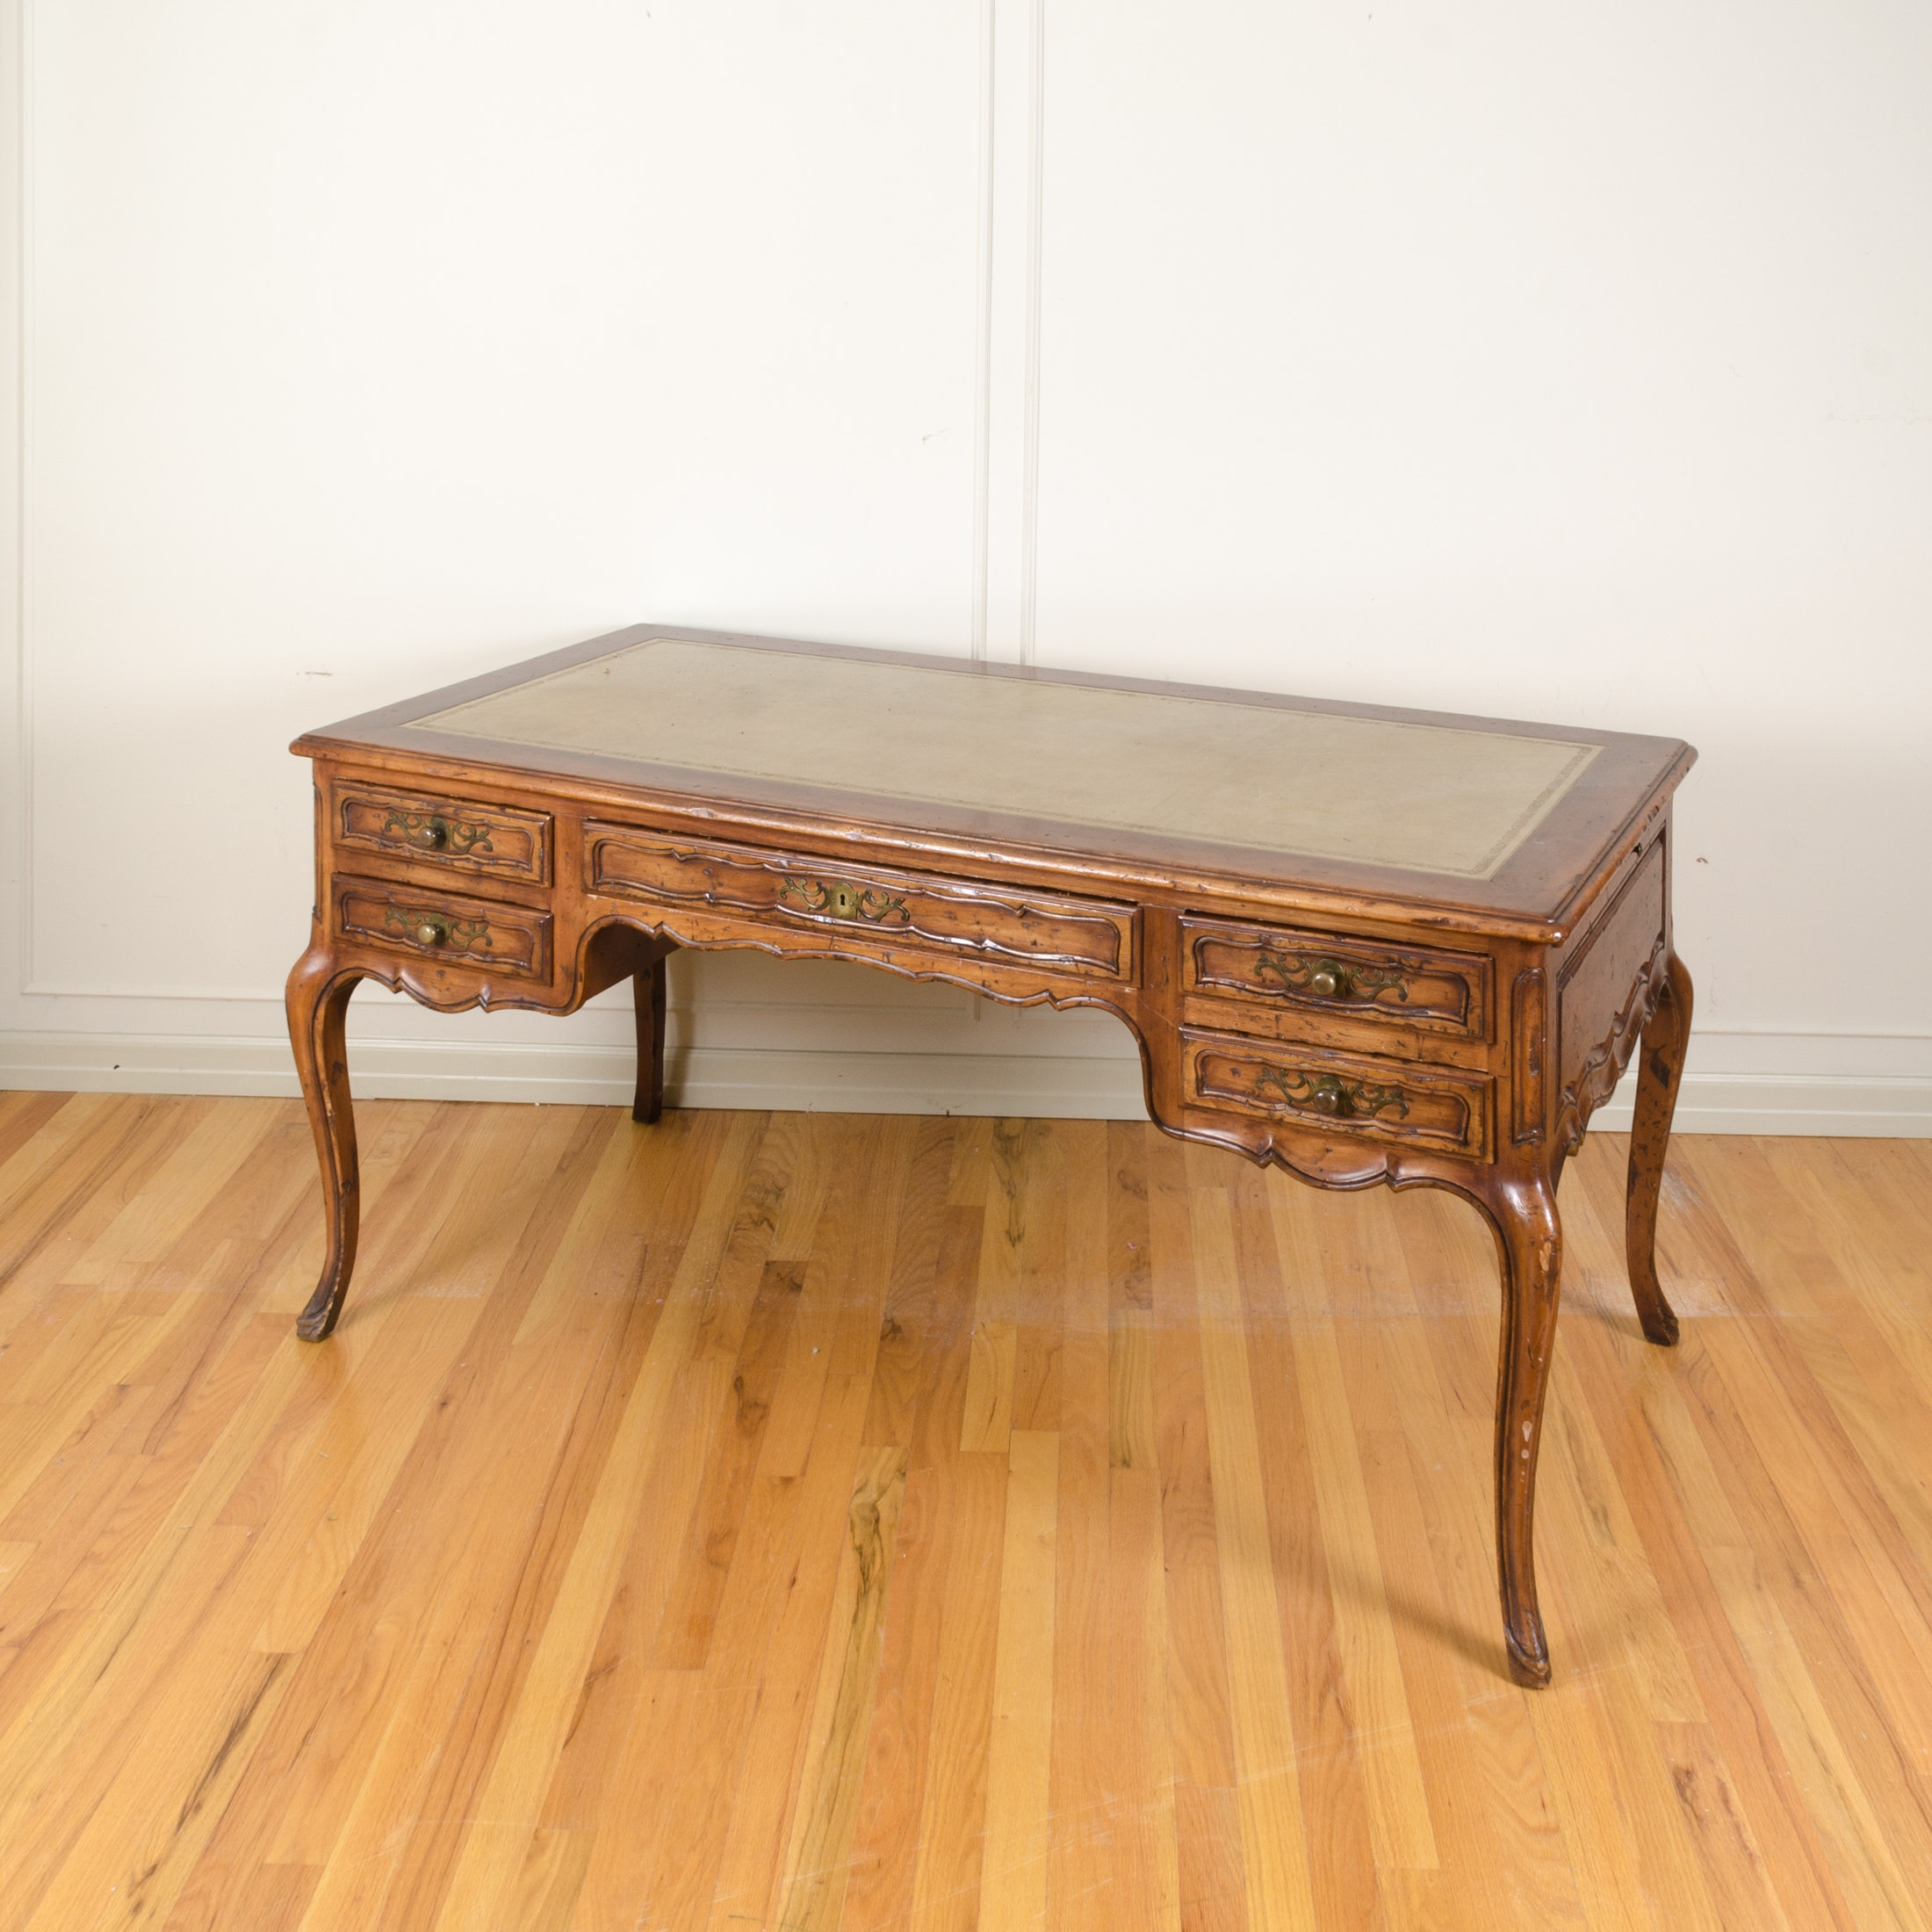 Vintage Louis XV Style Double Sided Desk by John Widdicomb